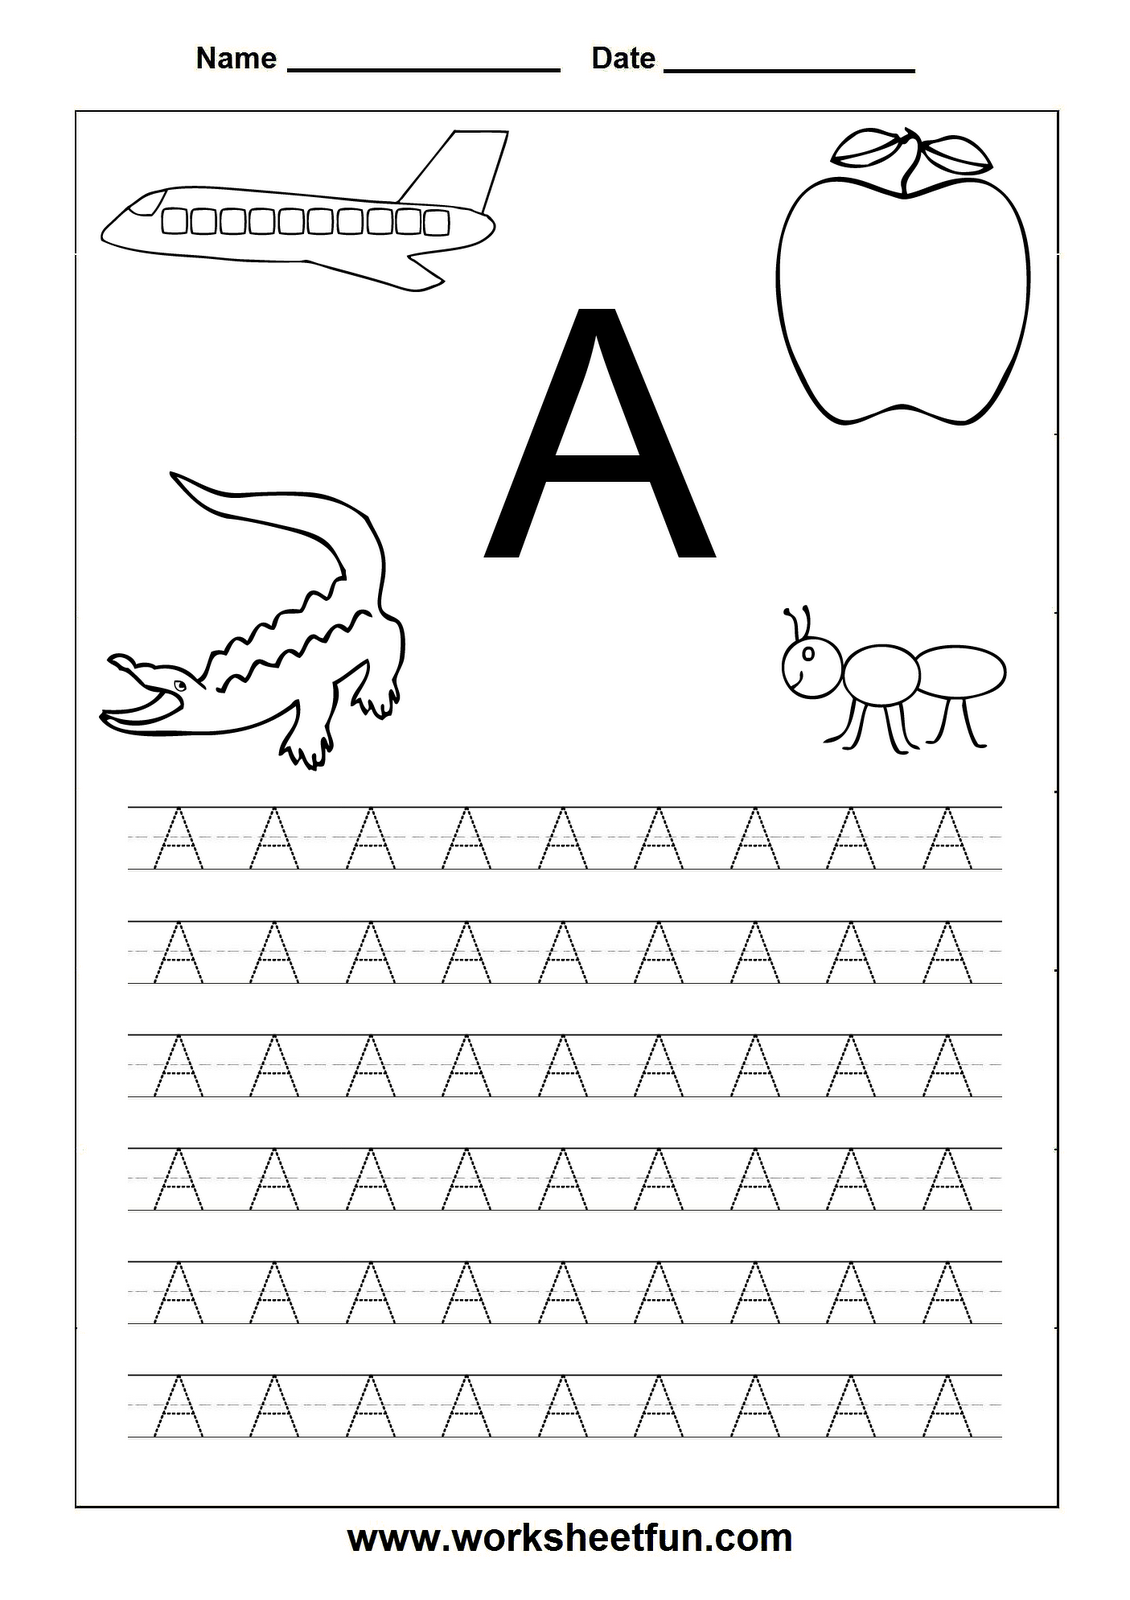 Worksheets Pre K Alphabet Tracing Worksheets free printable alphabet handwriting worksheetscrystal hoffman letter tracing and more worksheets for preschoolers